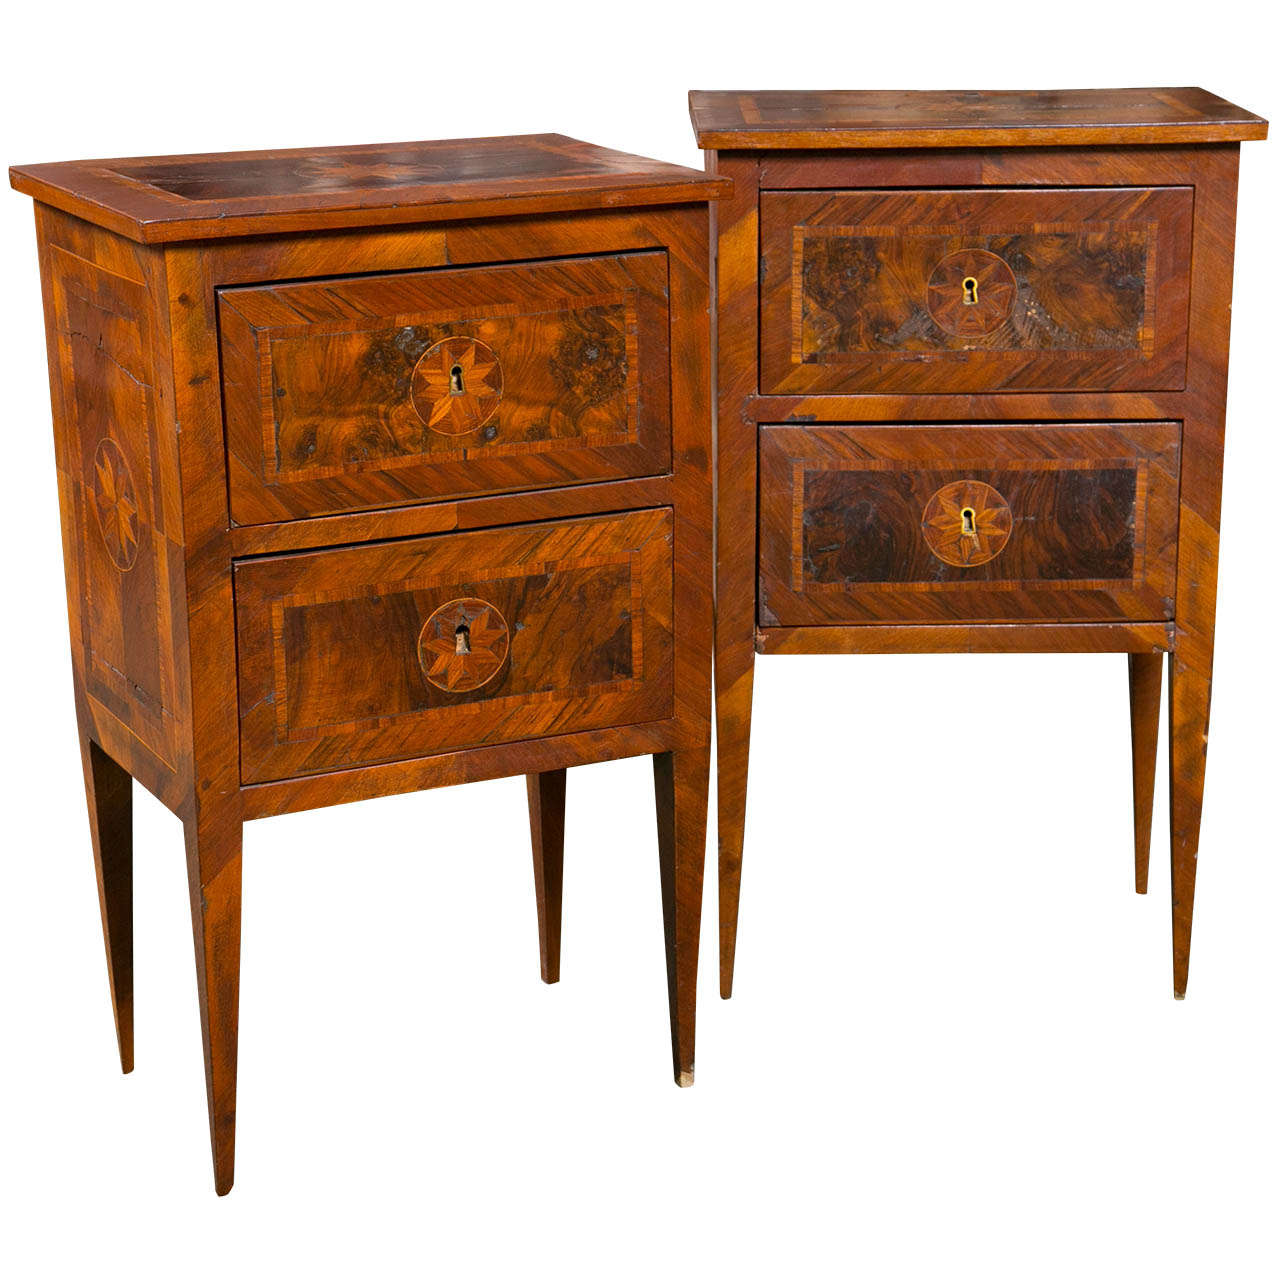 Pair of Late 18th Century Italian Bedside Tables For Sale at 1stdibs